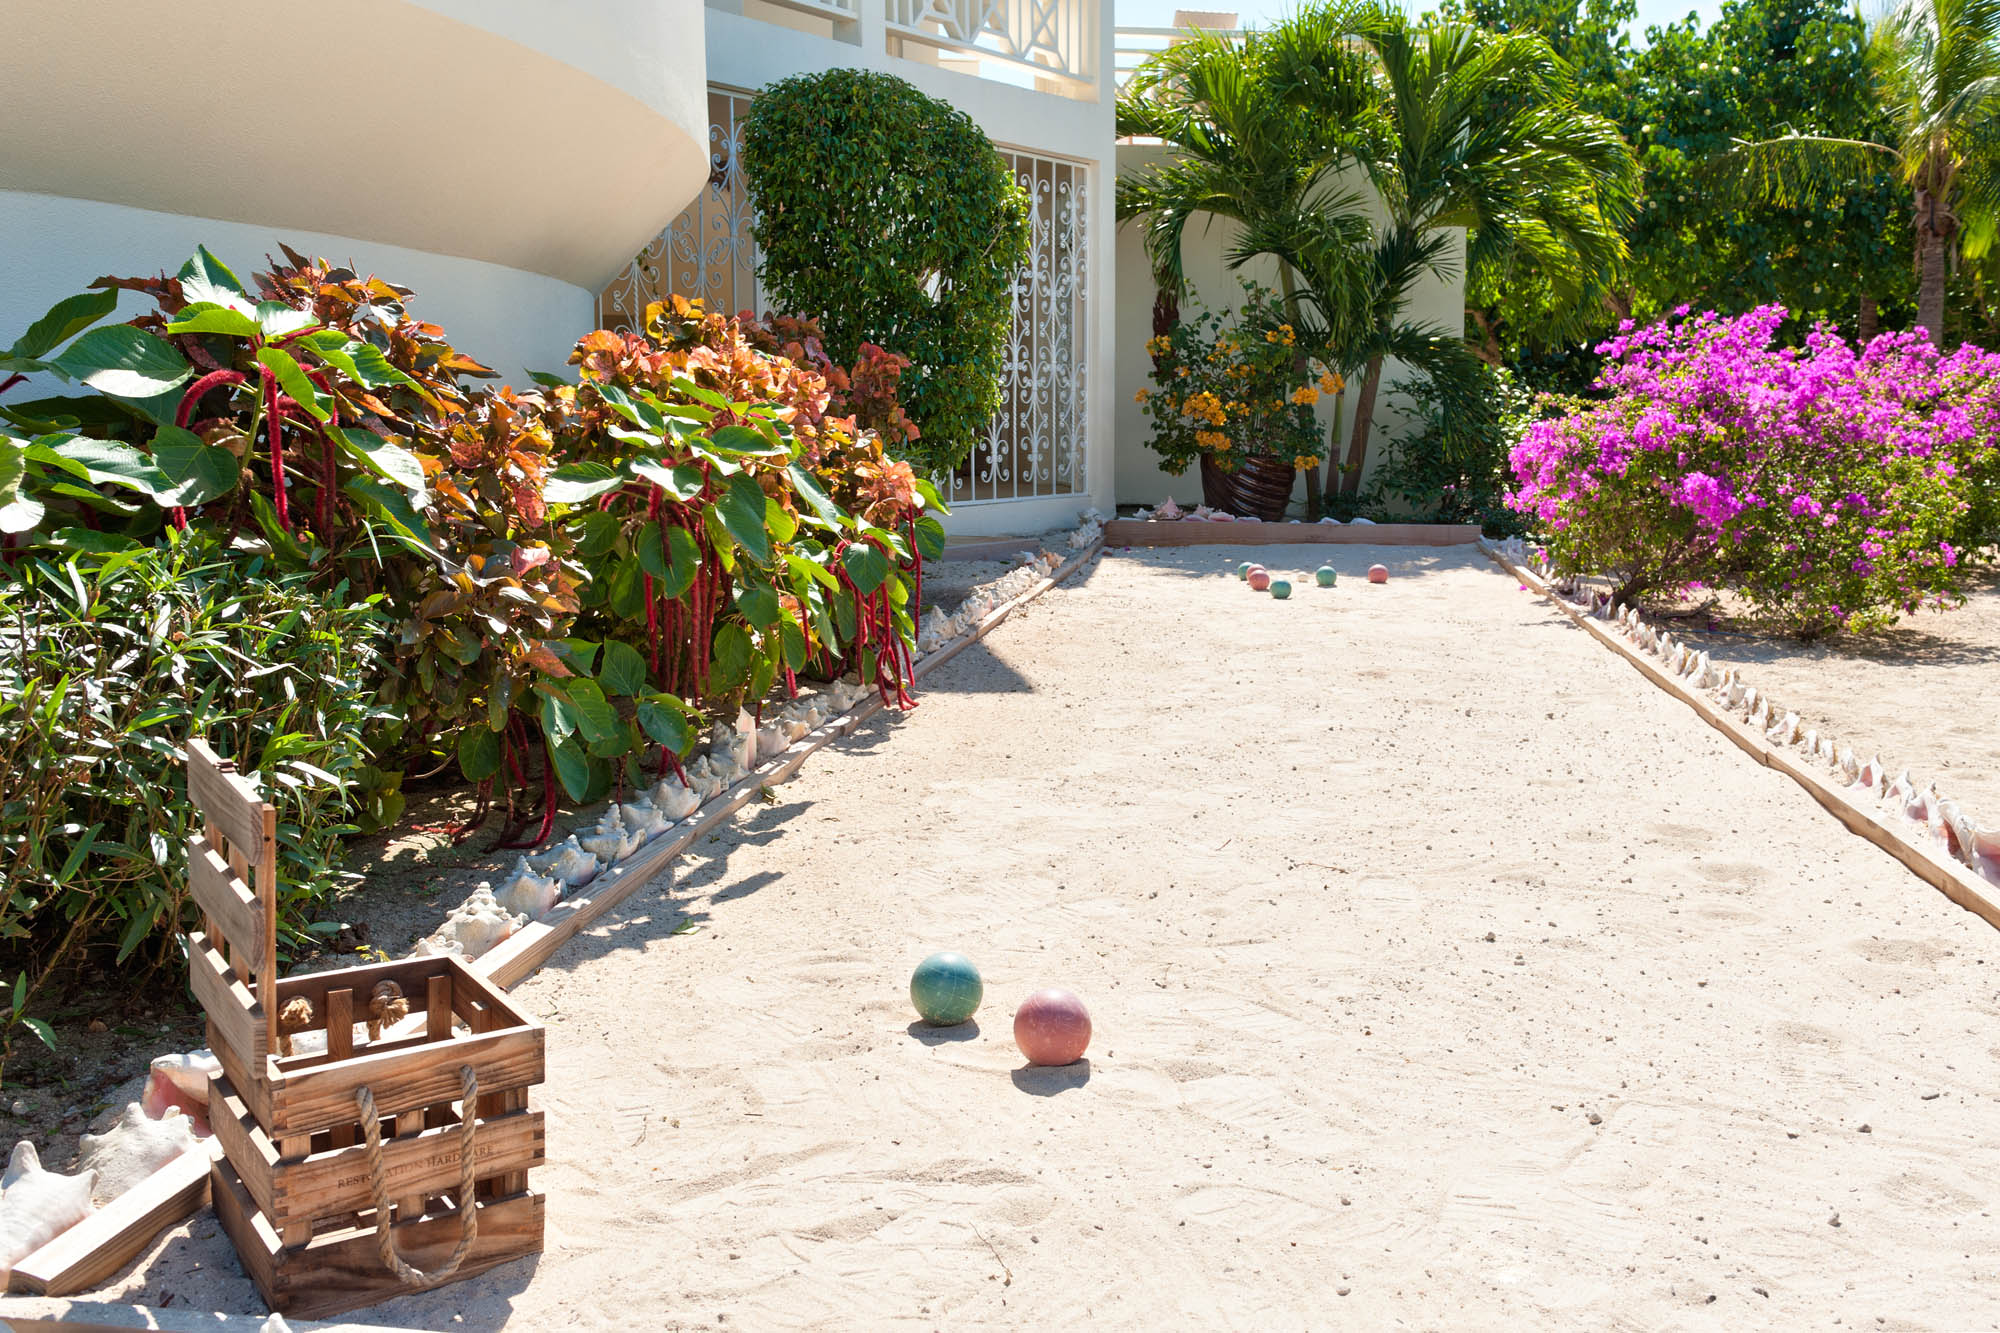 Your private Boci ball court at Turtle Beach Villa, Grace Bay Beach, Providenciales (Provo), Turks and Caicos Islands.